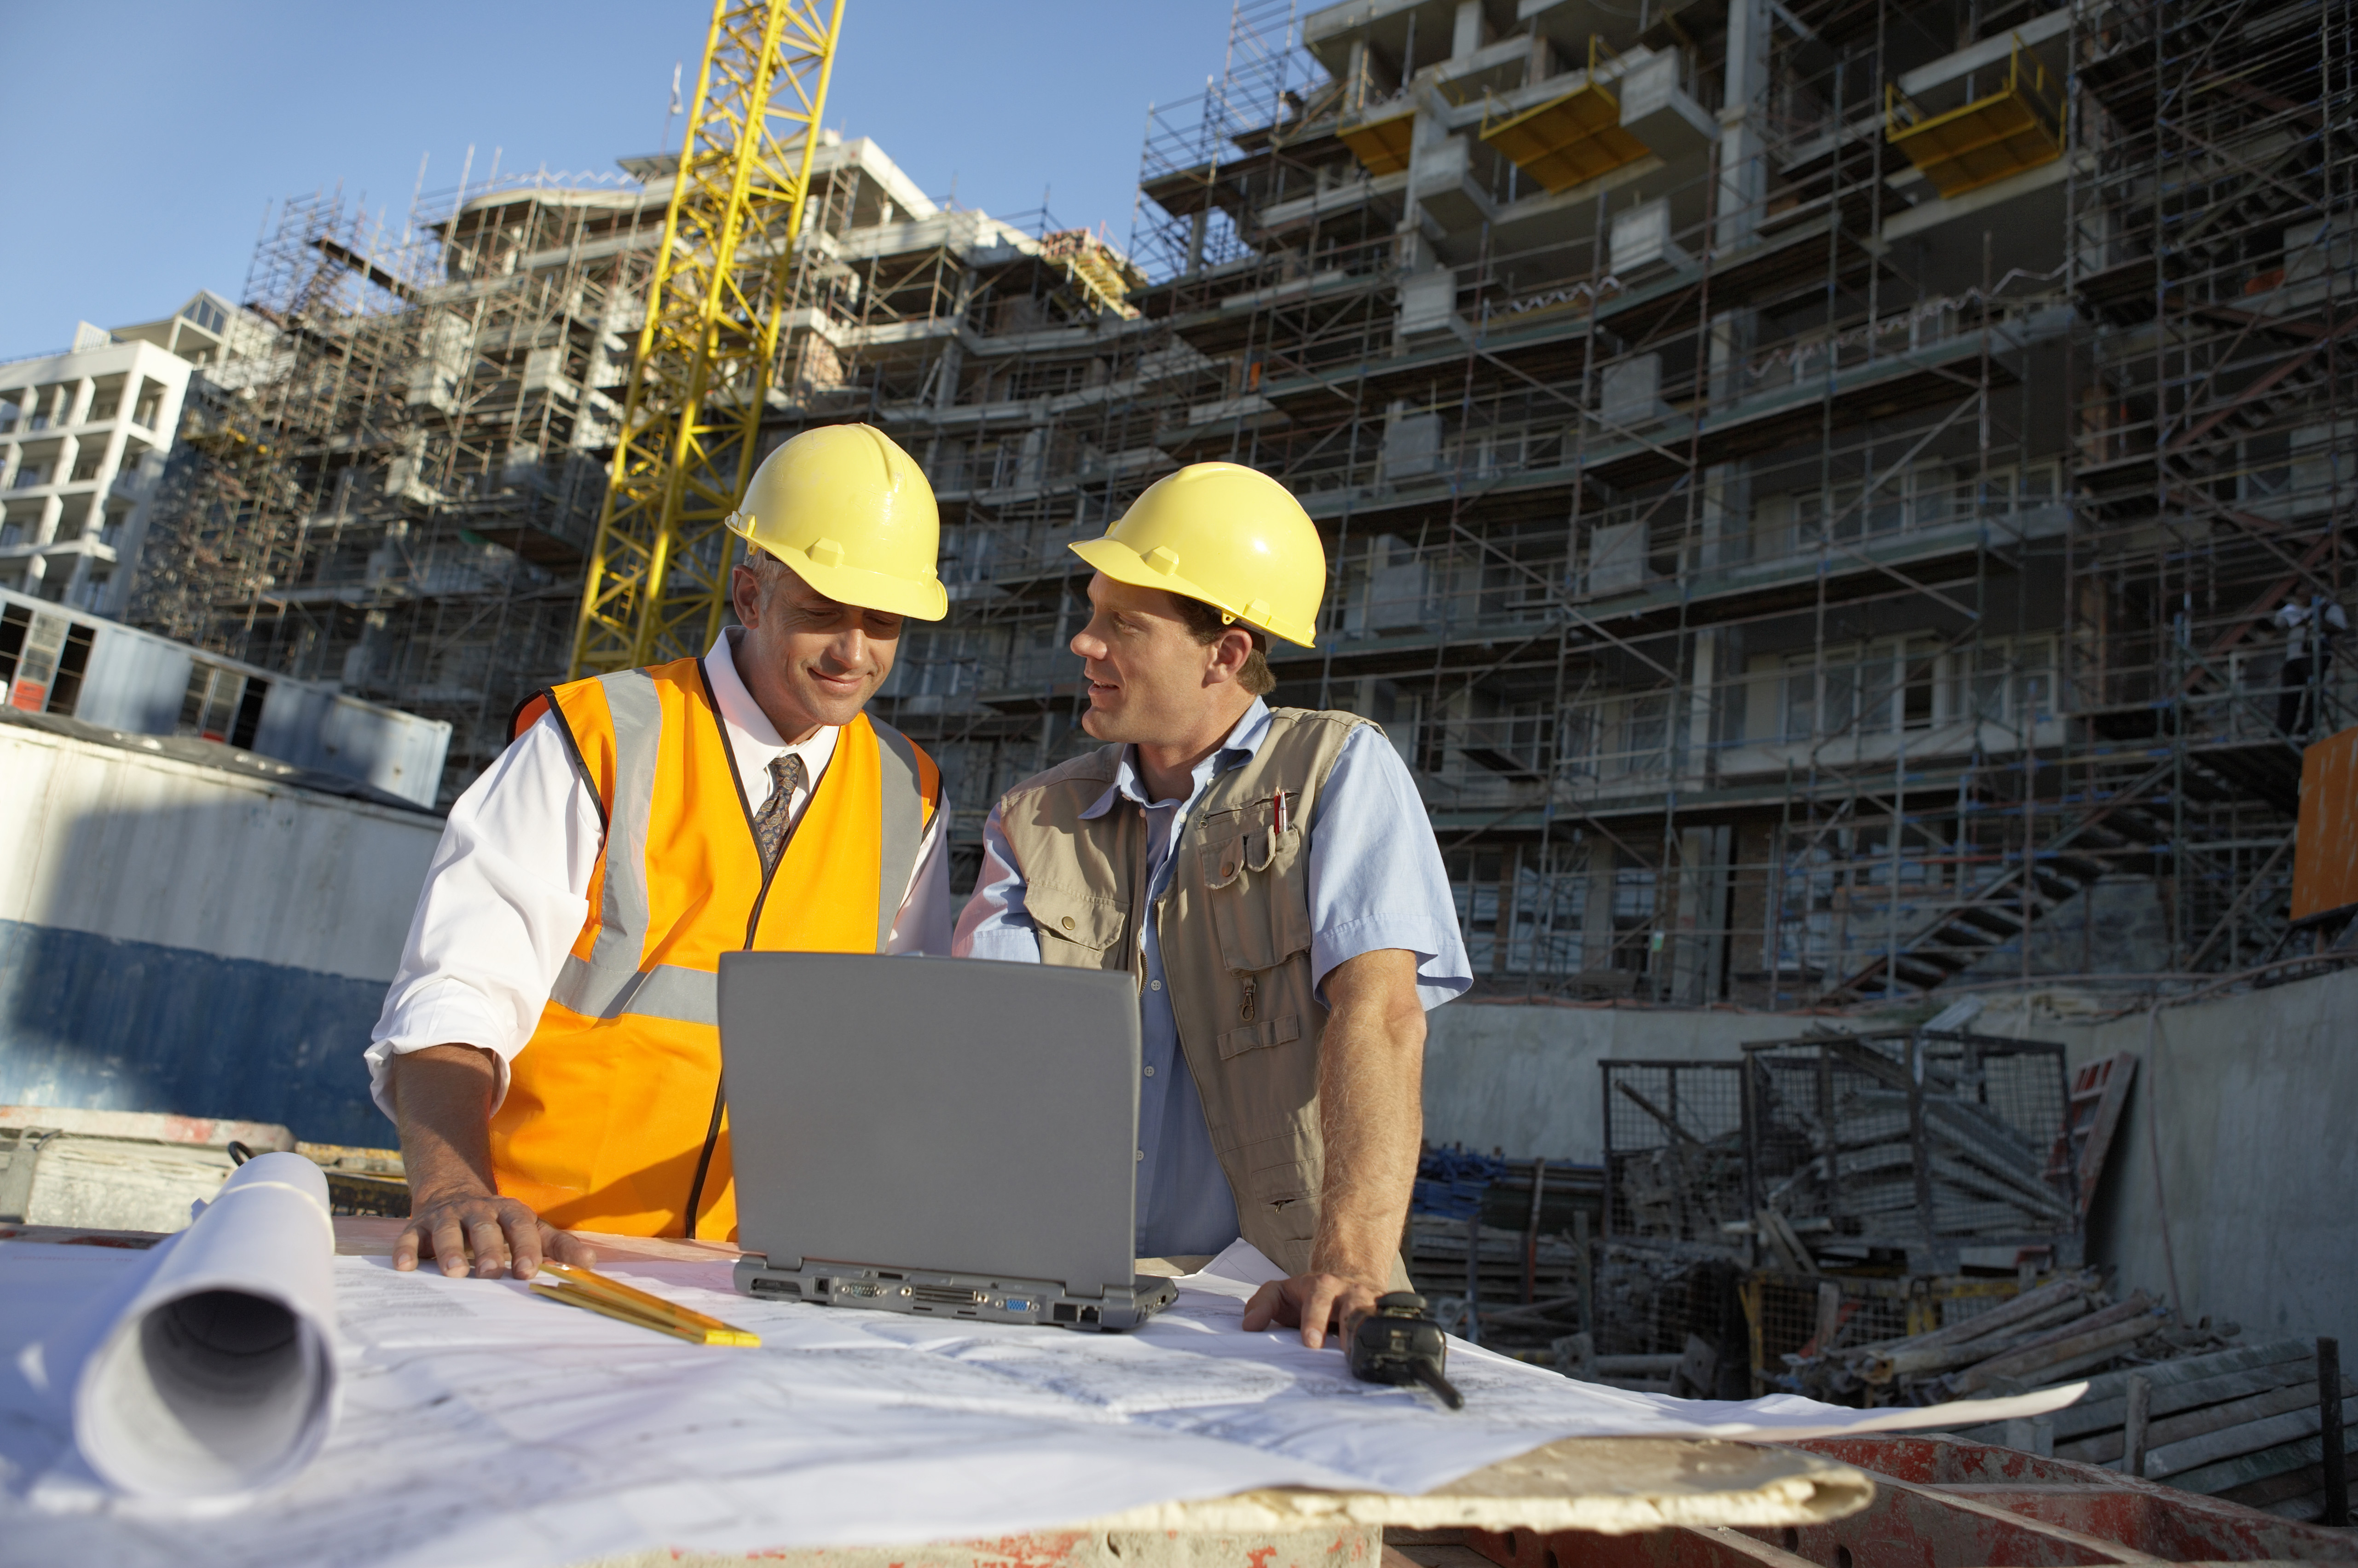 how project photos effect a construction company s brand brand two men wearing hard hats looking at a laptop computer on a building site